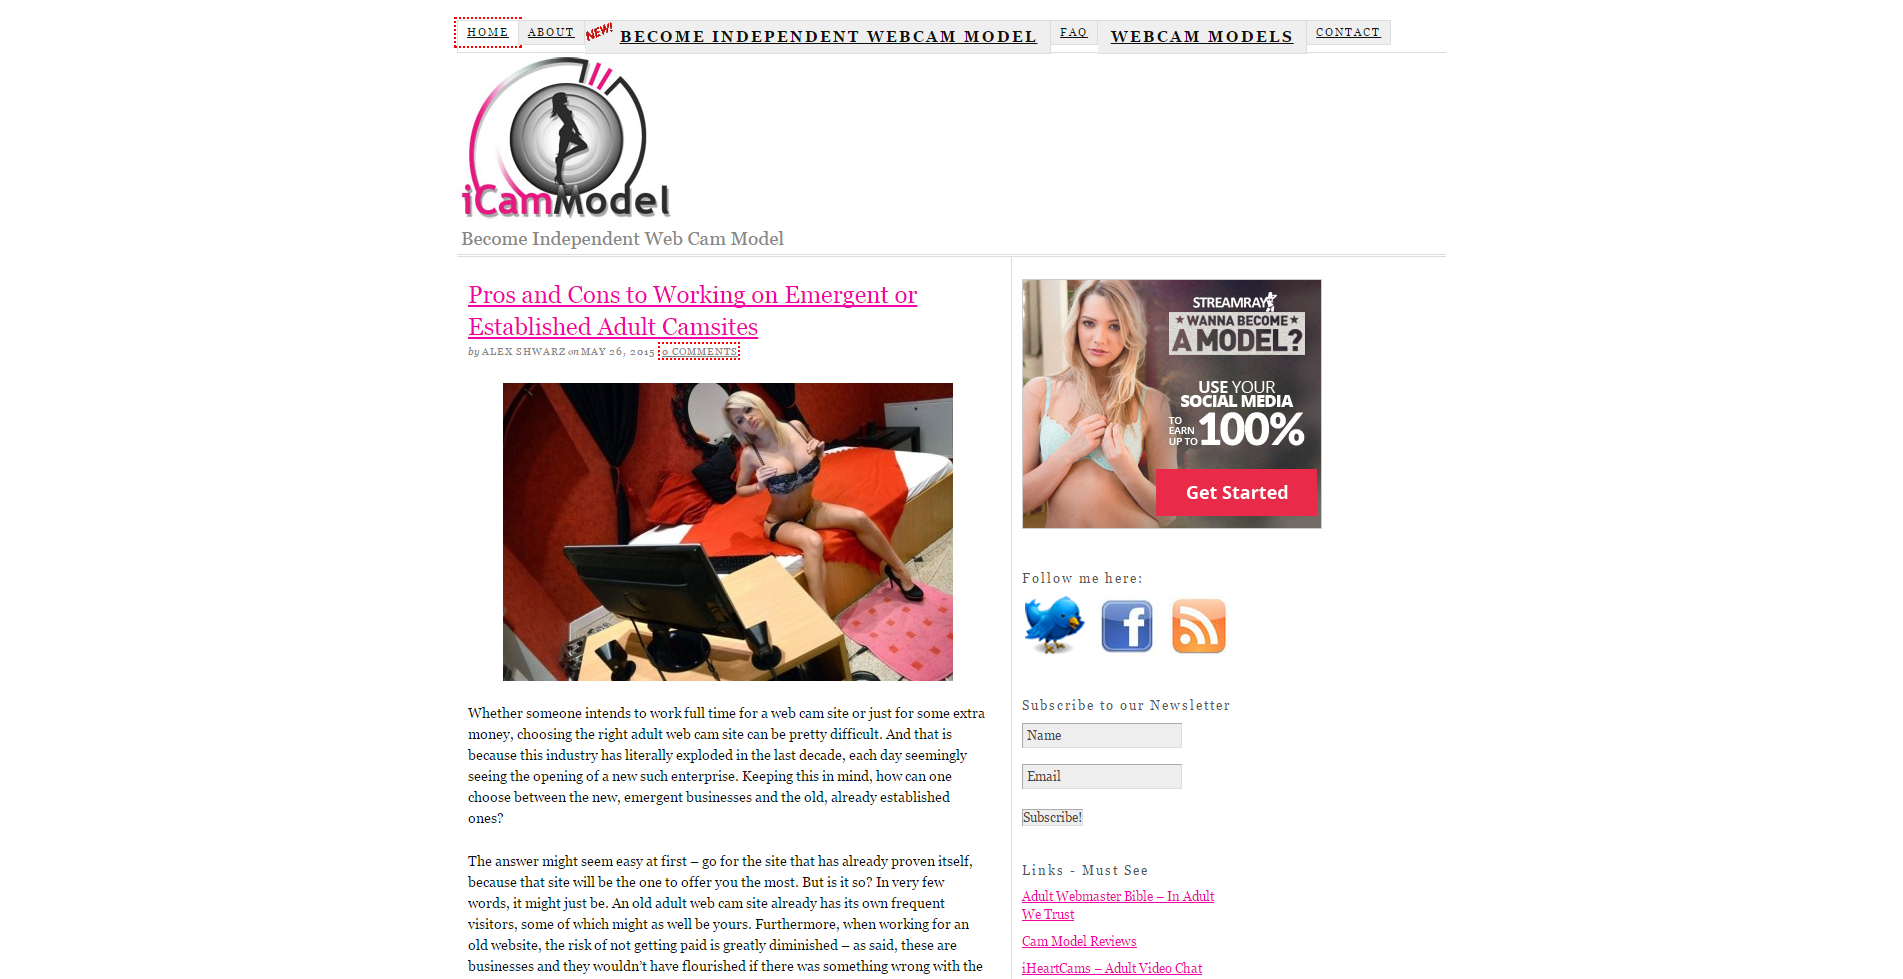 iCamModel - Become an Independent Web Cam Model